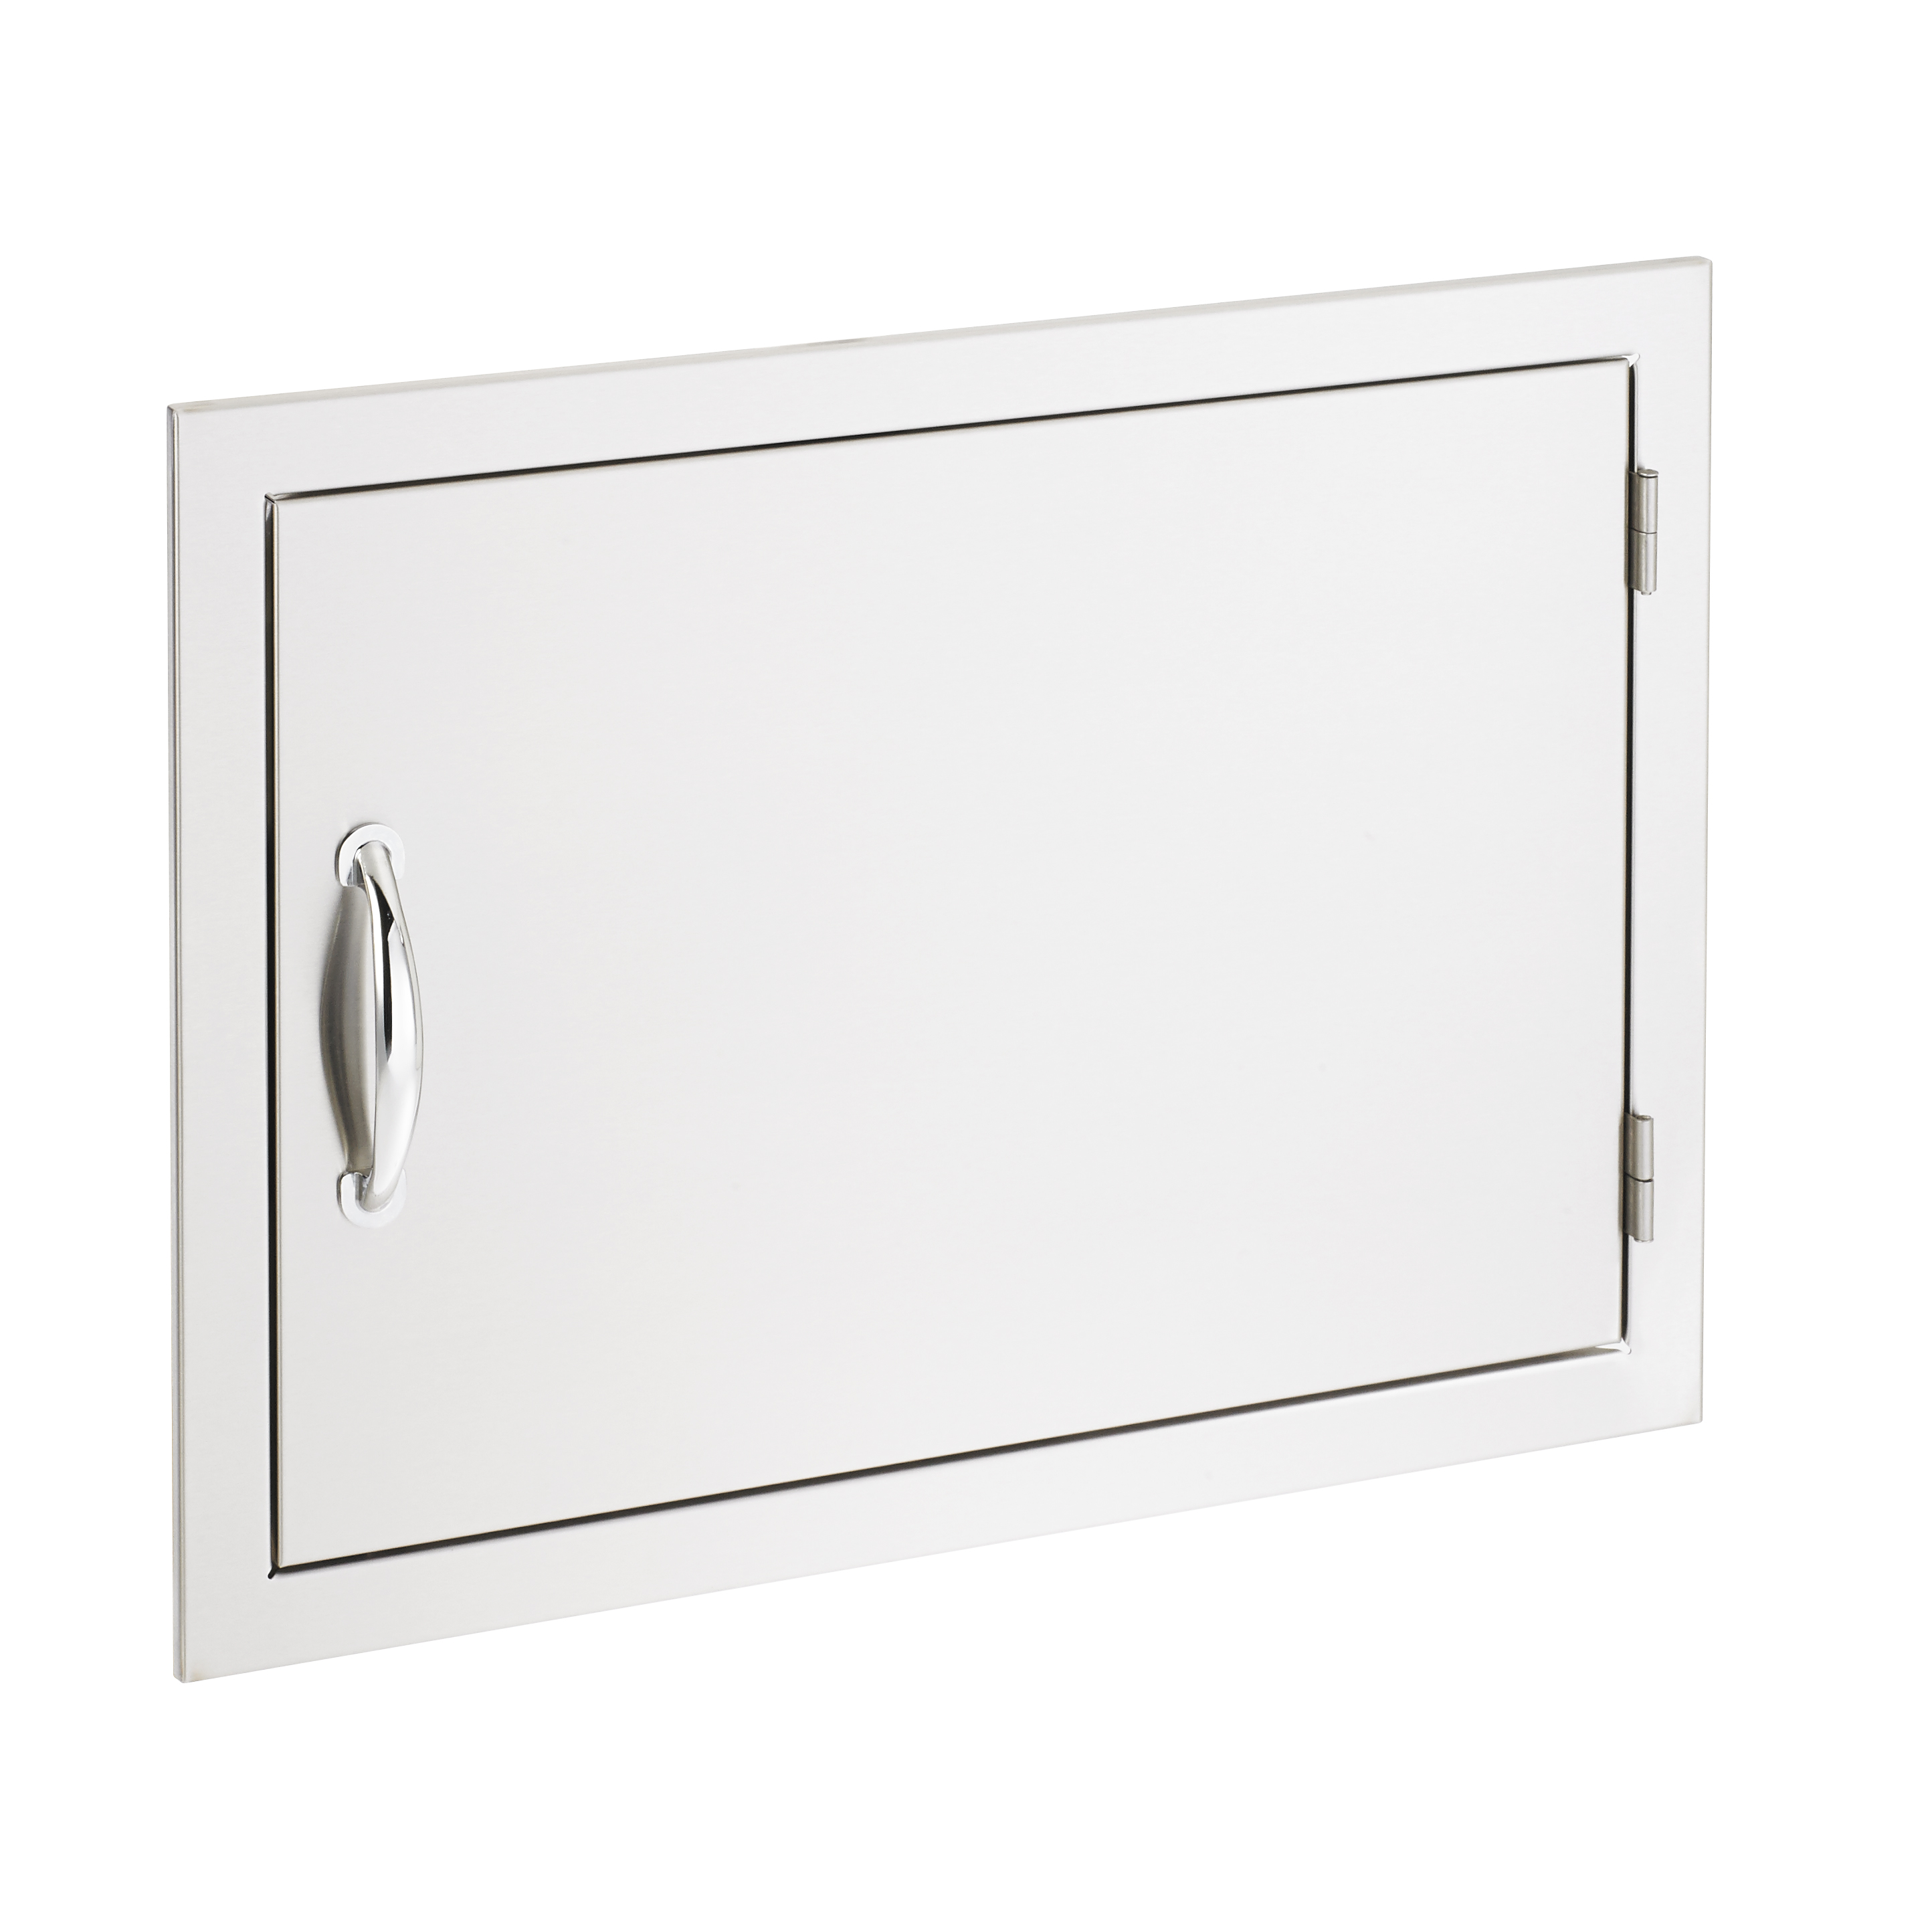 "Summerset 24"" Horizontal Door, SSHD-1"